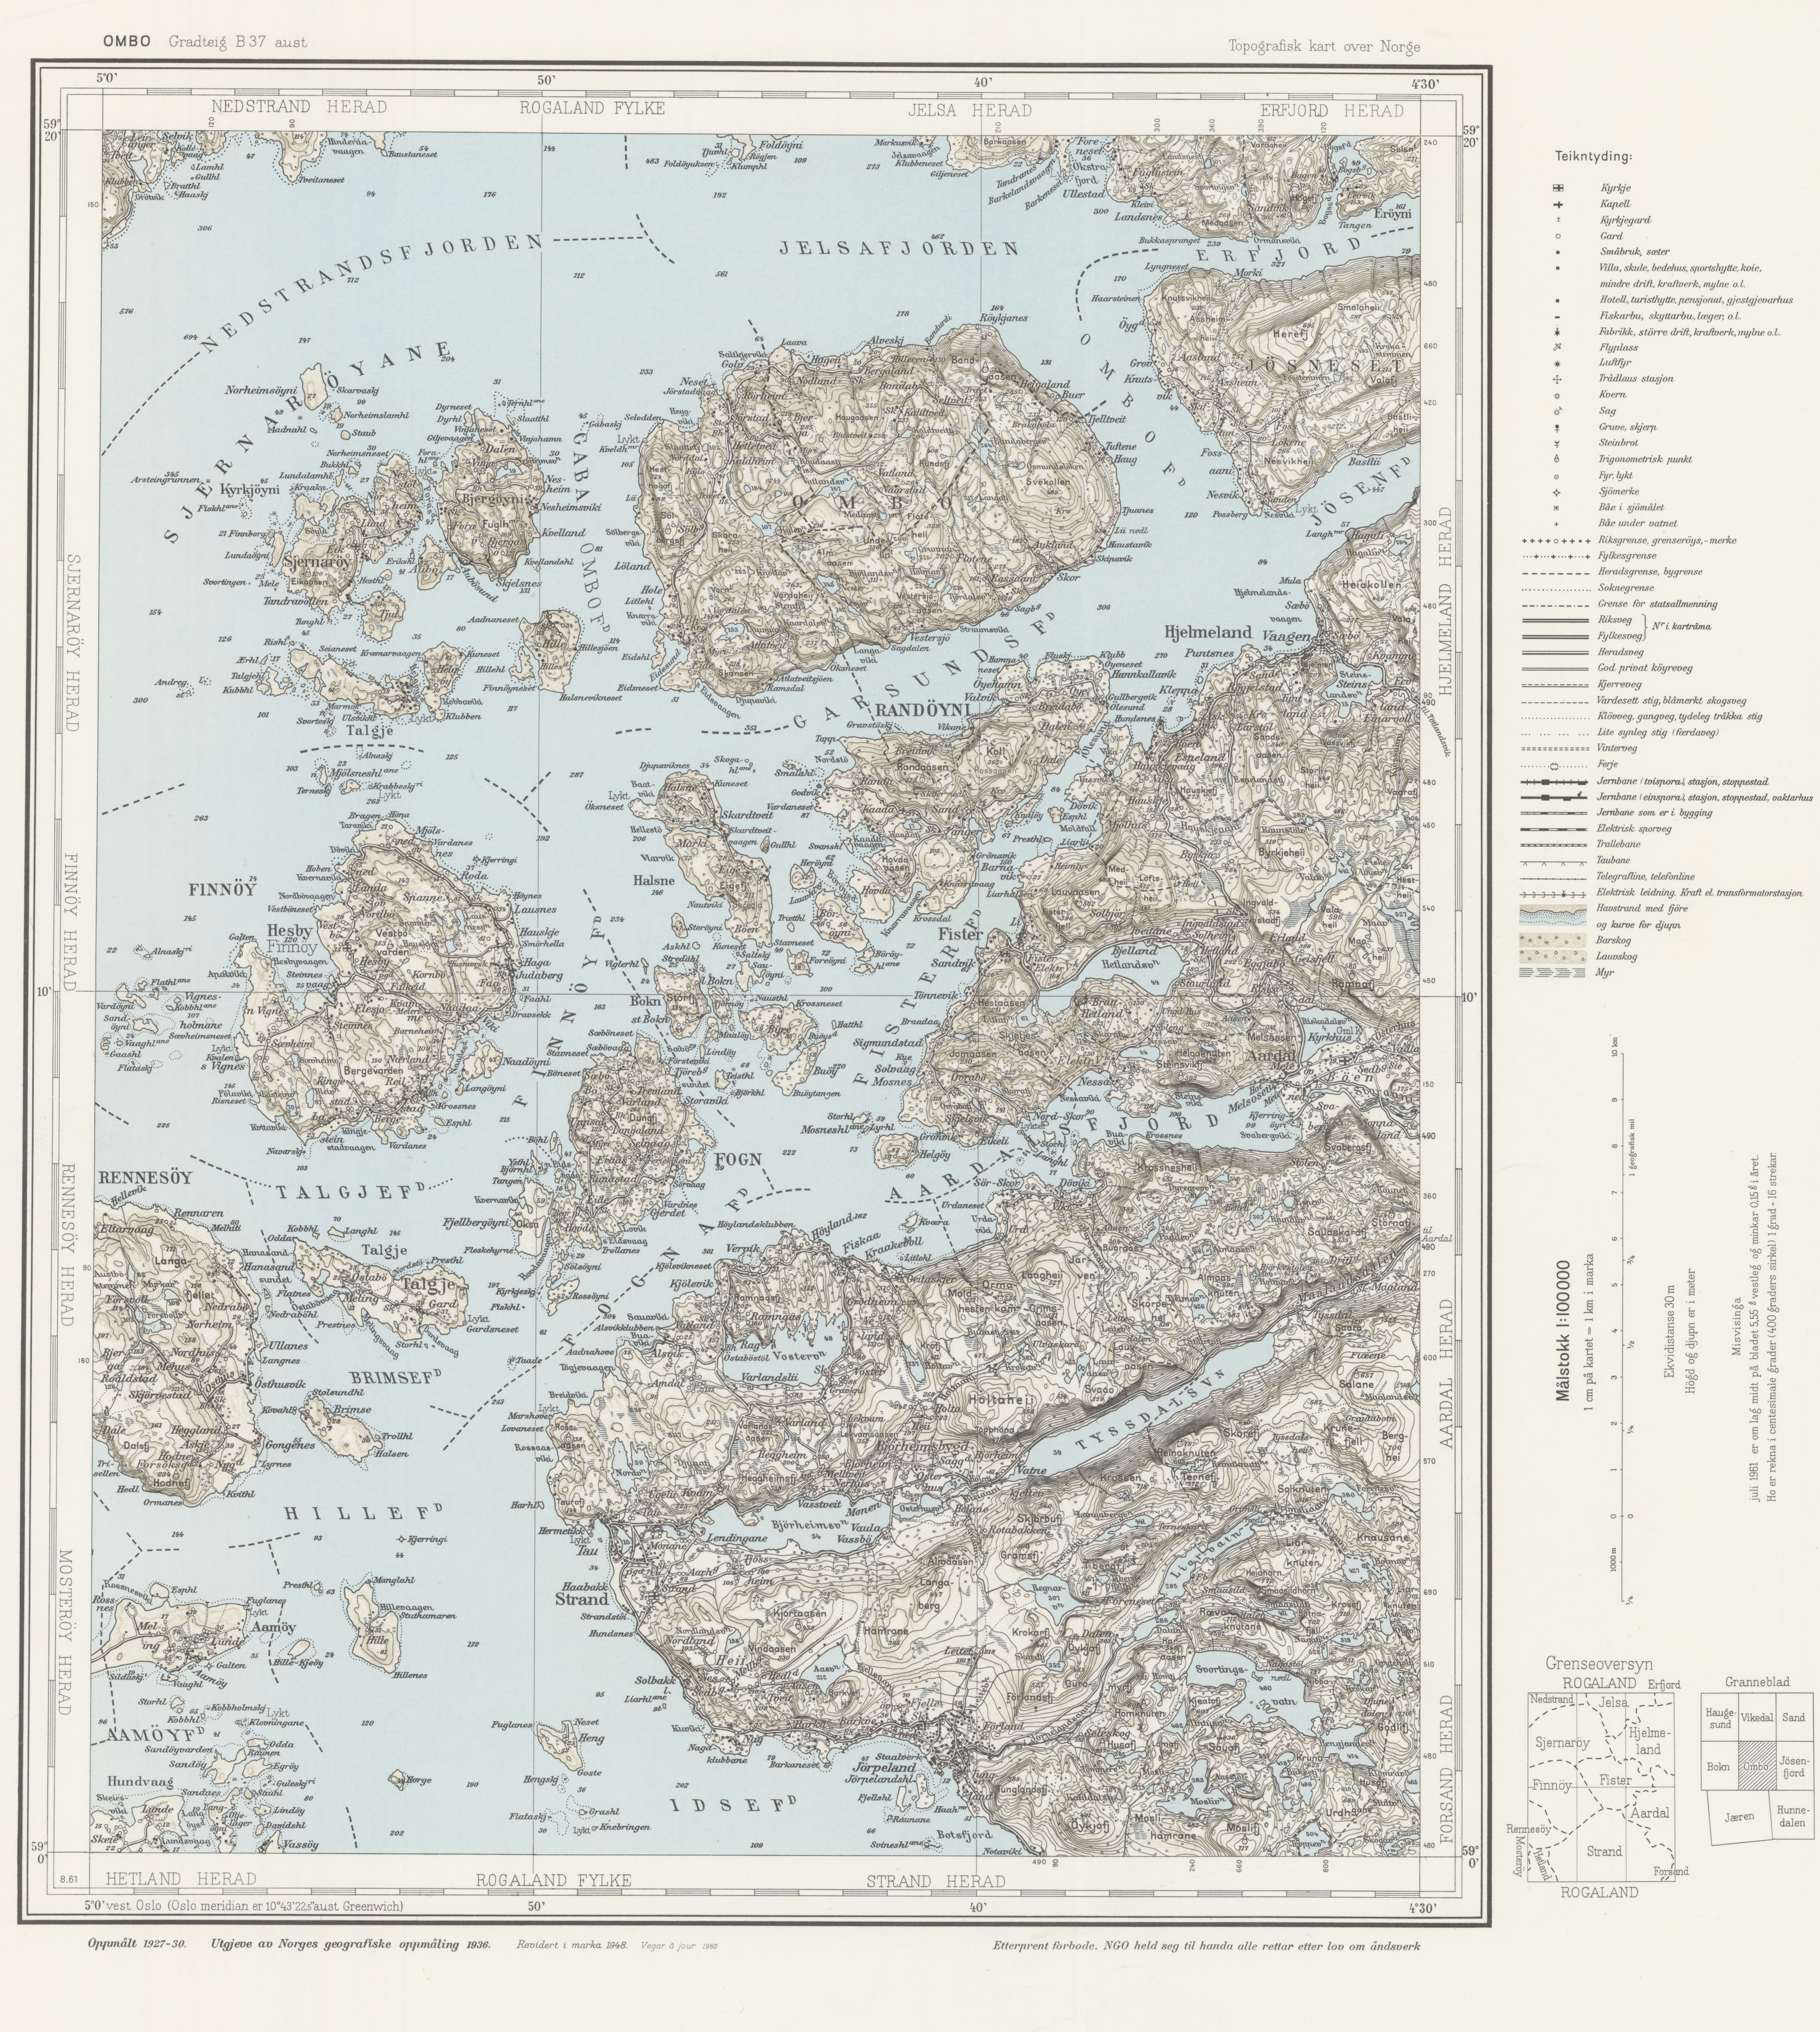 File Topographic map of Norway B37 aust Ombo 1960 Wikimedia